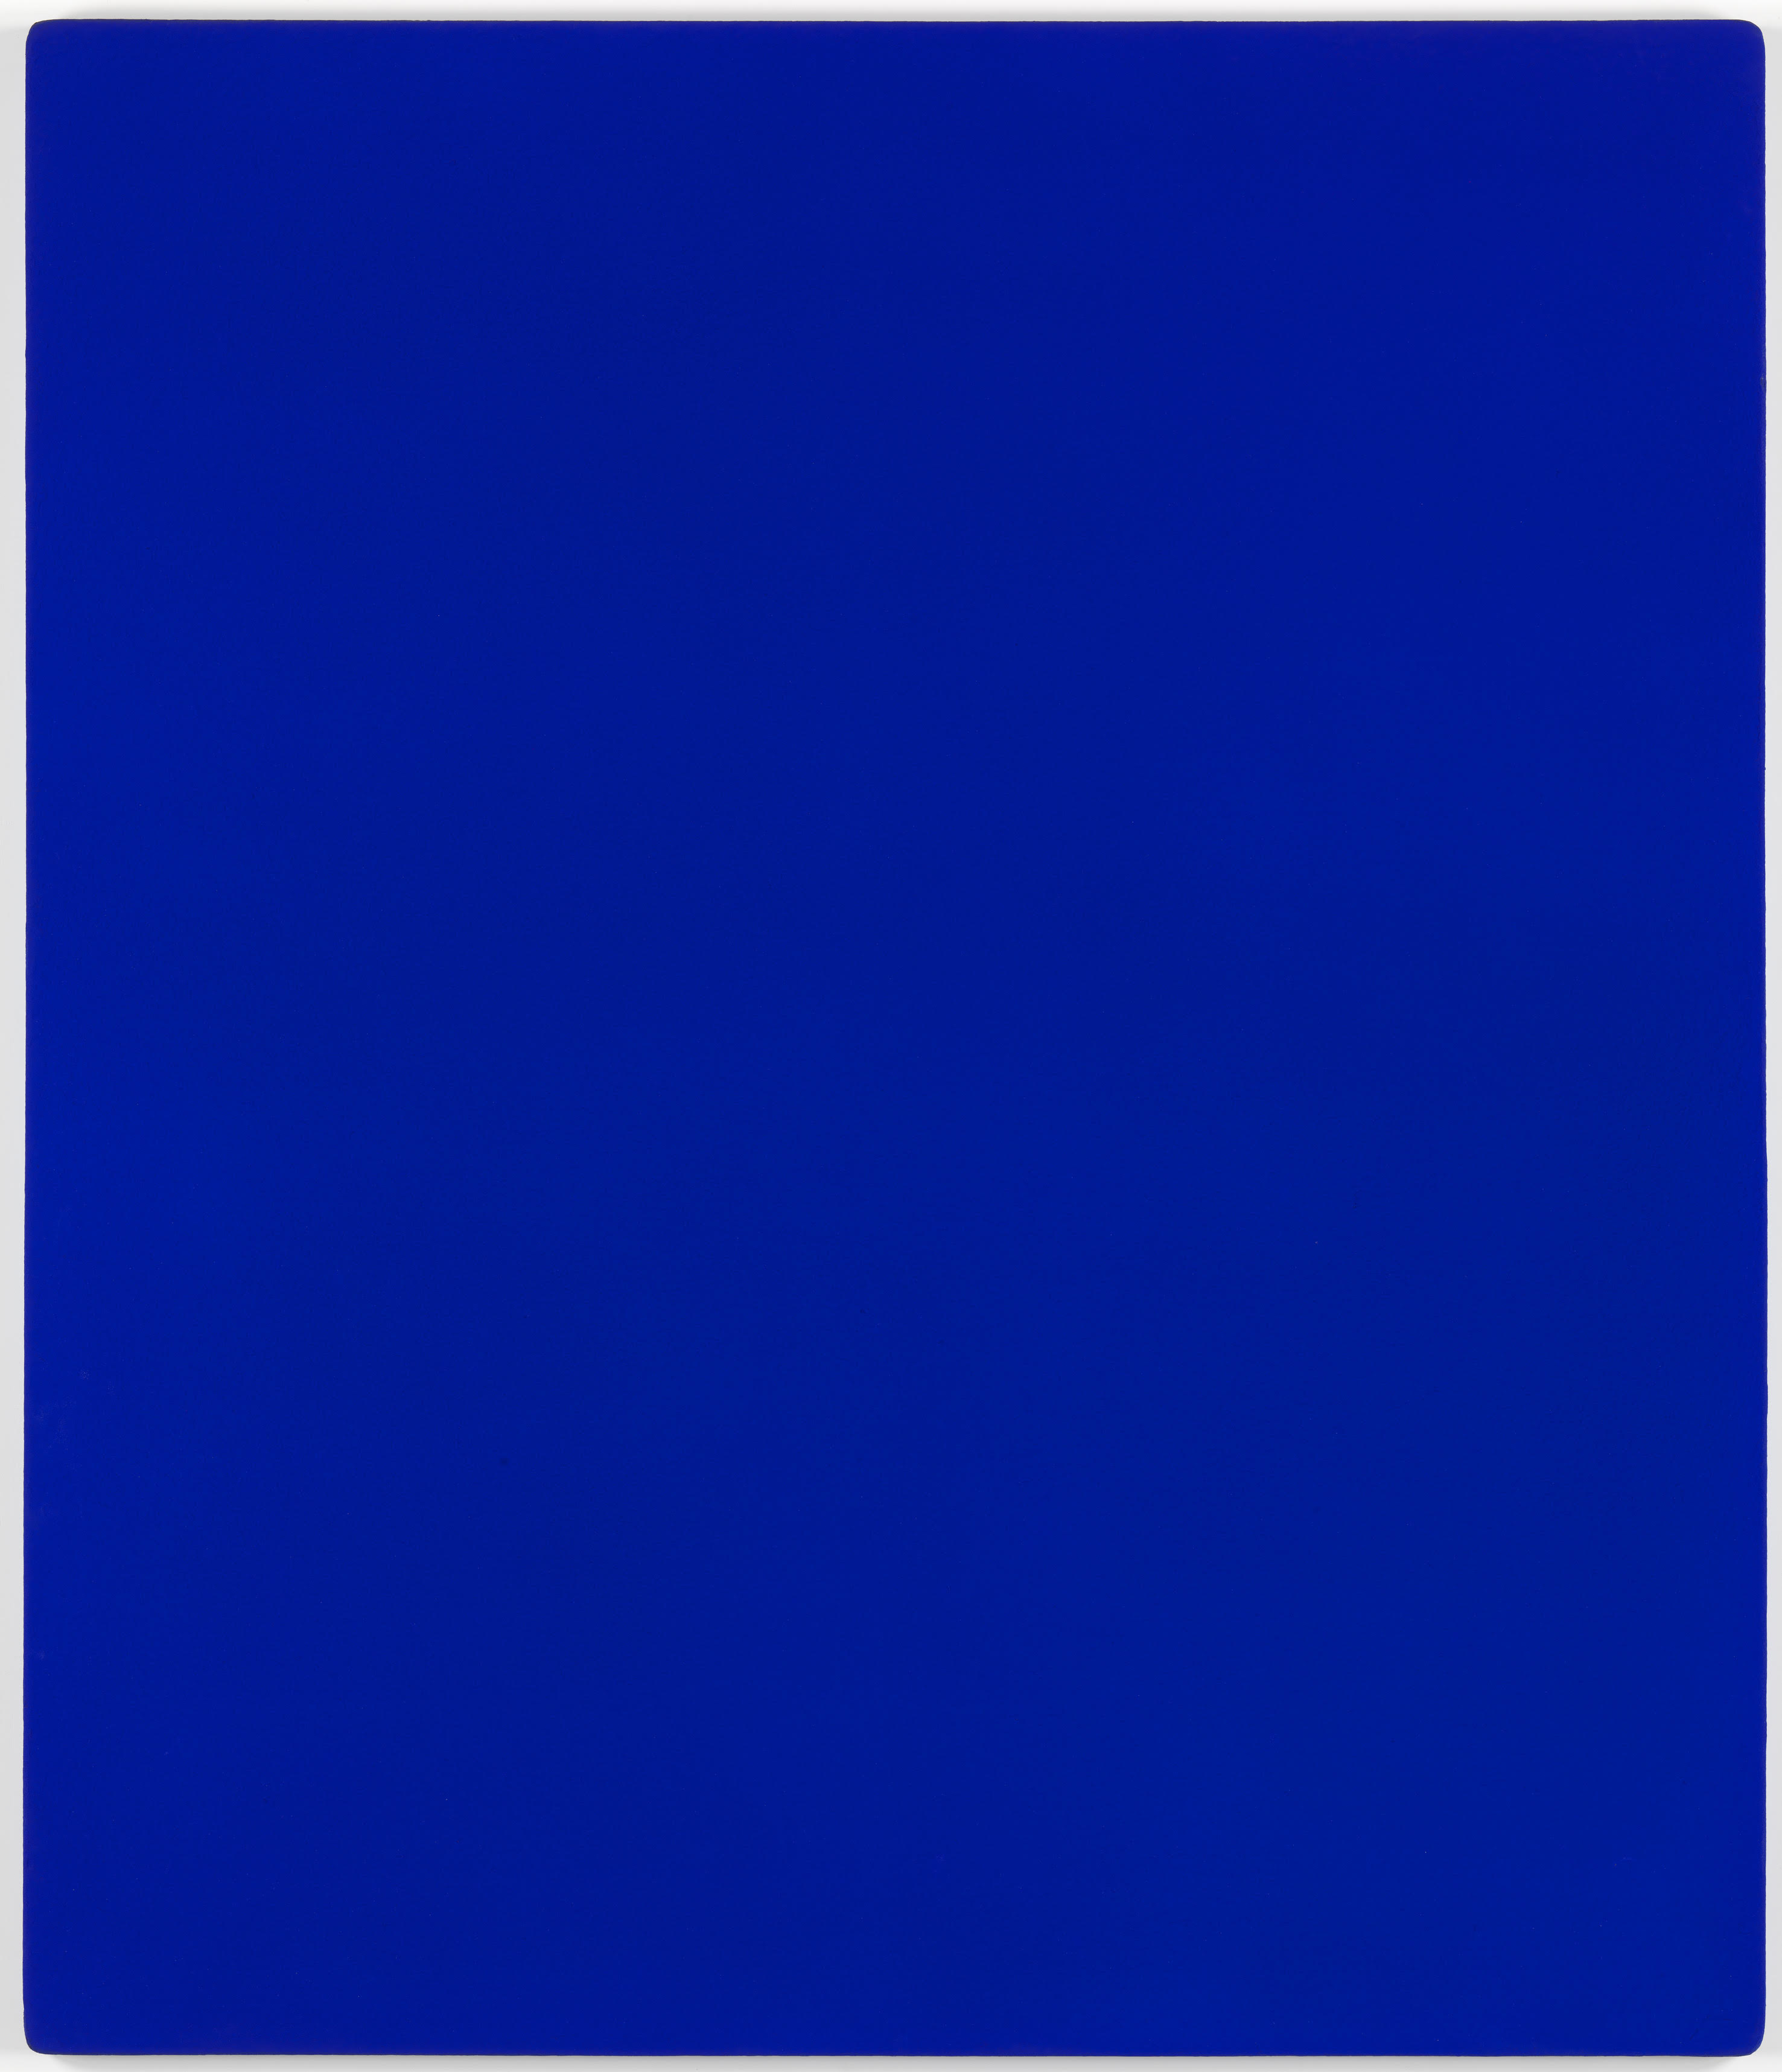 ©Yves Klein, ADAGP, Paris/ DACS, London, 2016